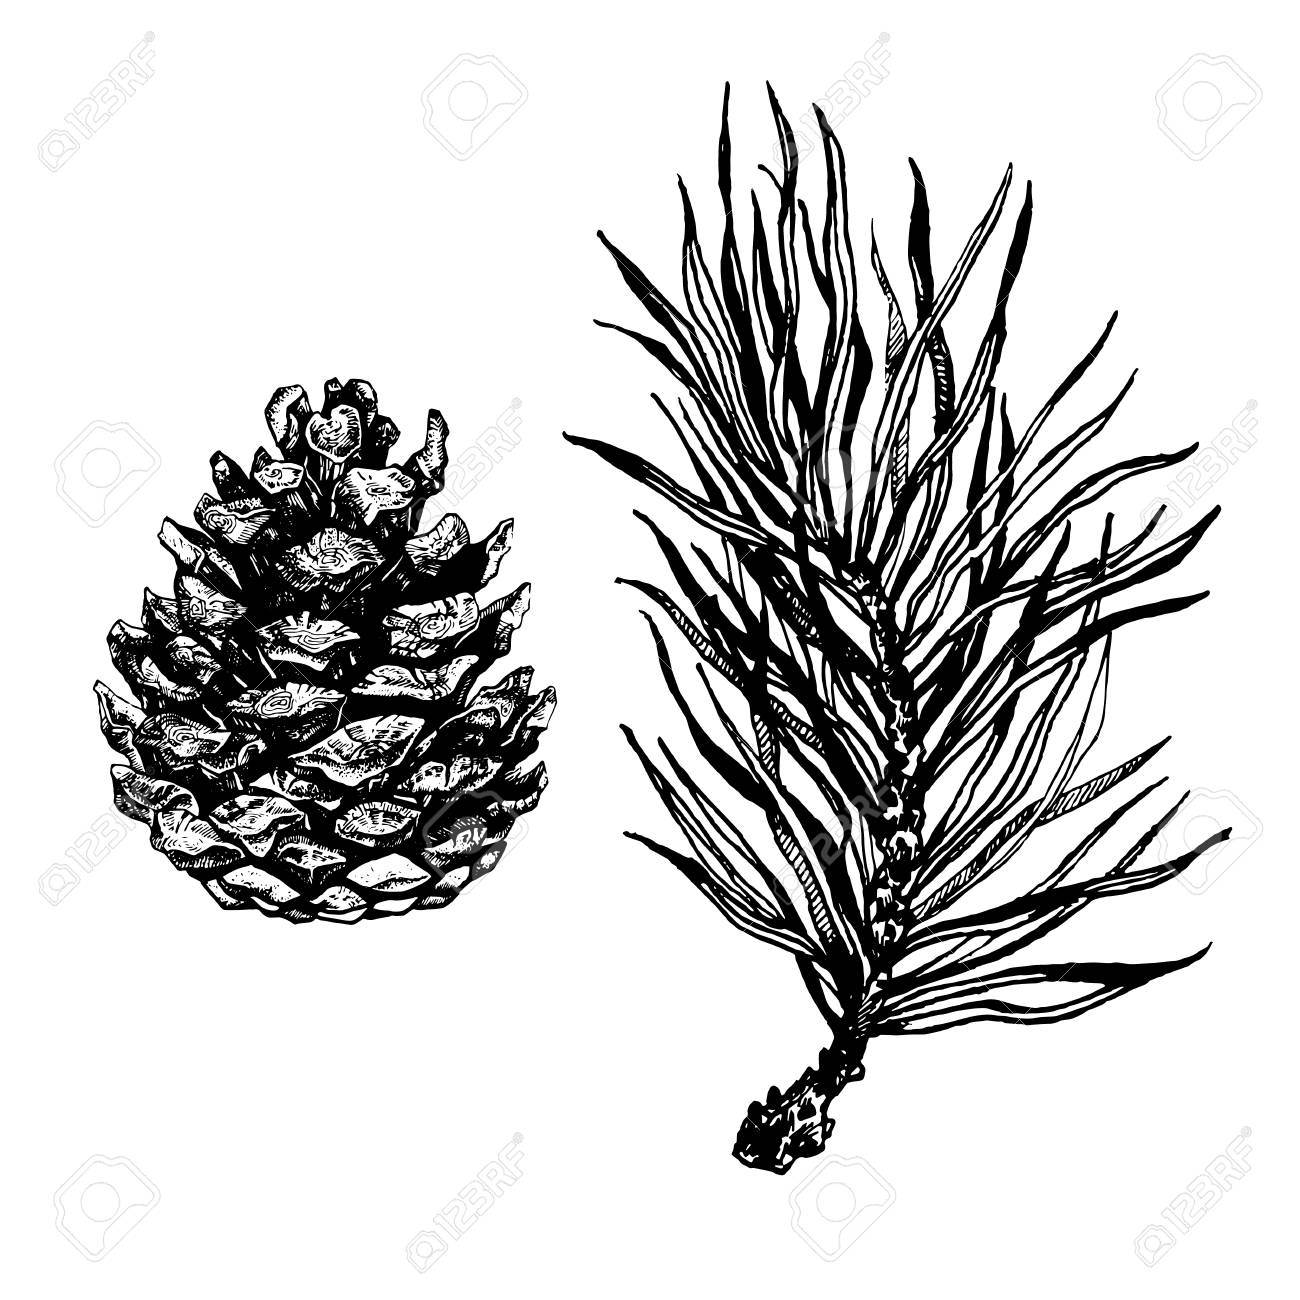 1300x1300 Hand Drawn Pine Tree Branch And Pine Cones Isolated On White